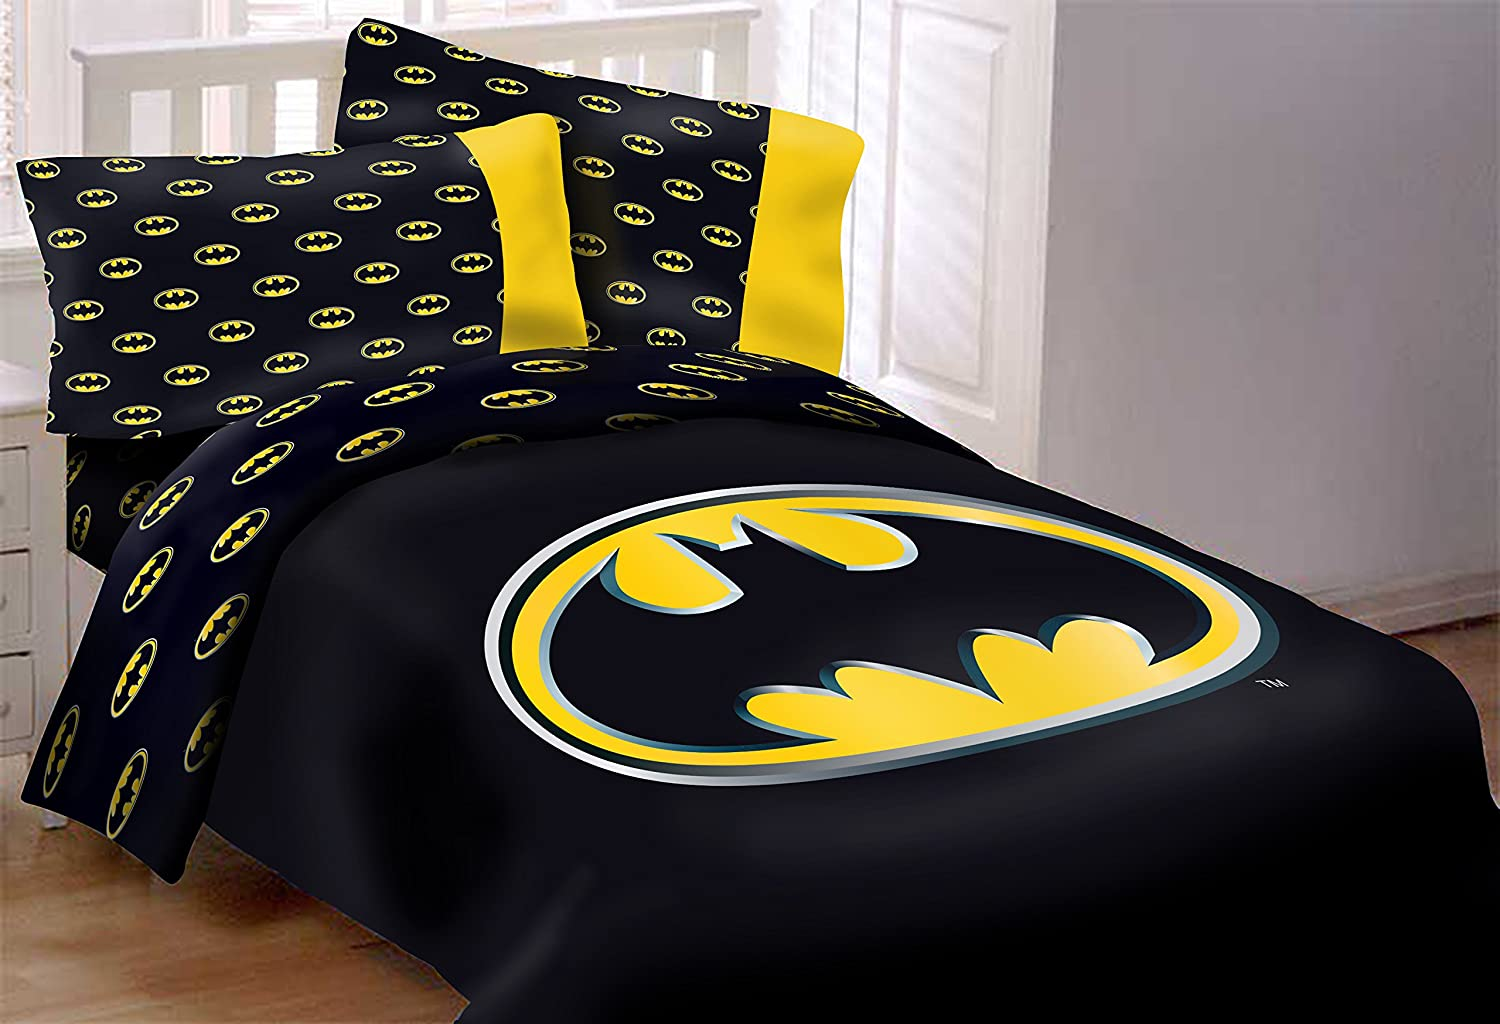 amazoncom batman emblem 5 piece reversible super soft luxury full size comforter set by jd home home kitchen